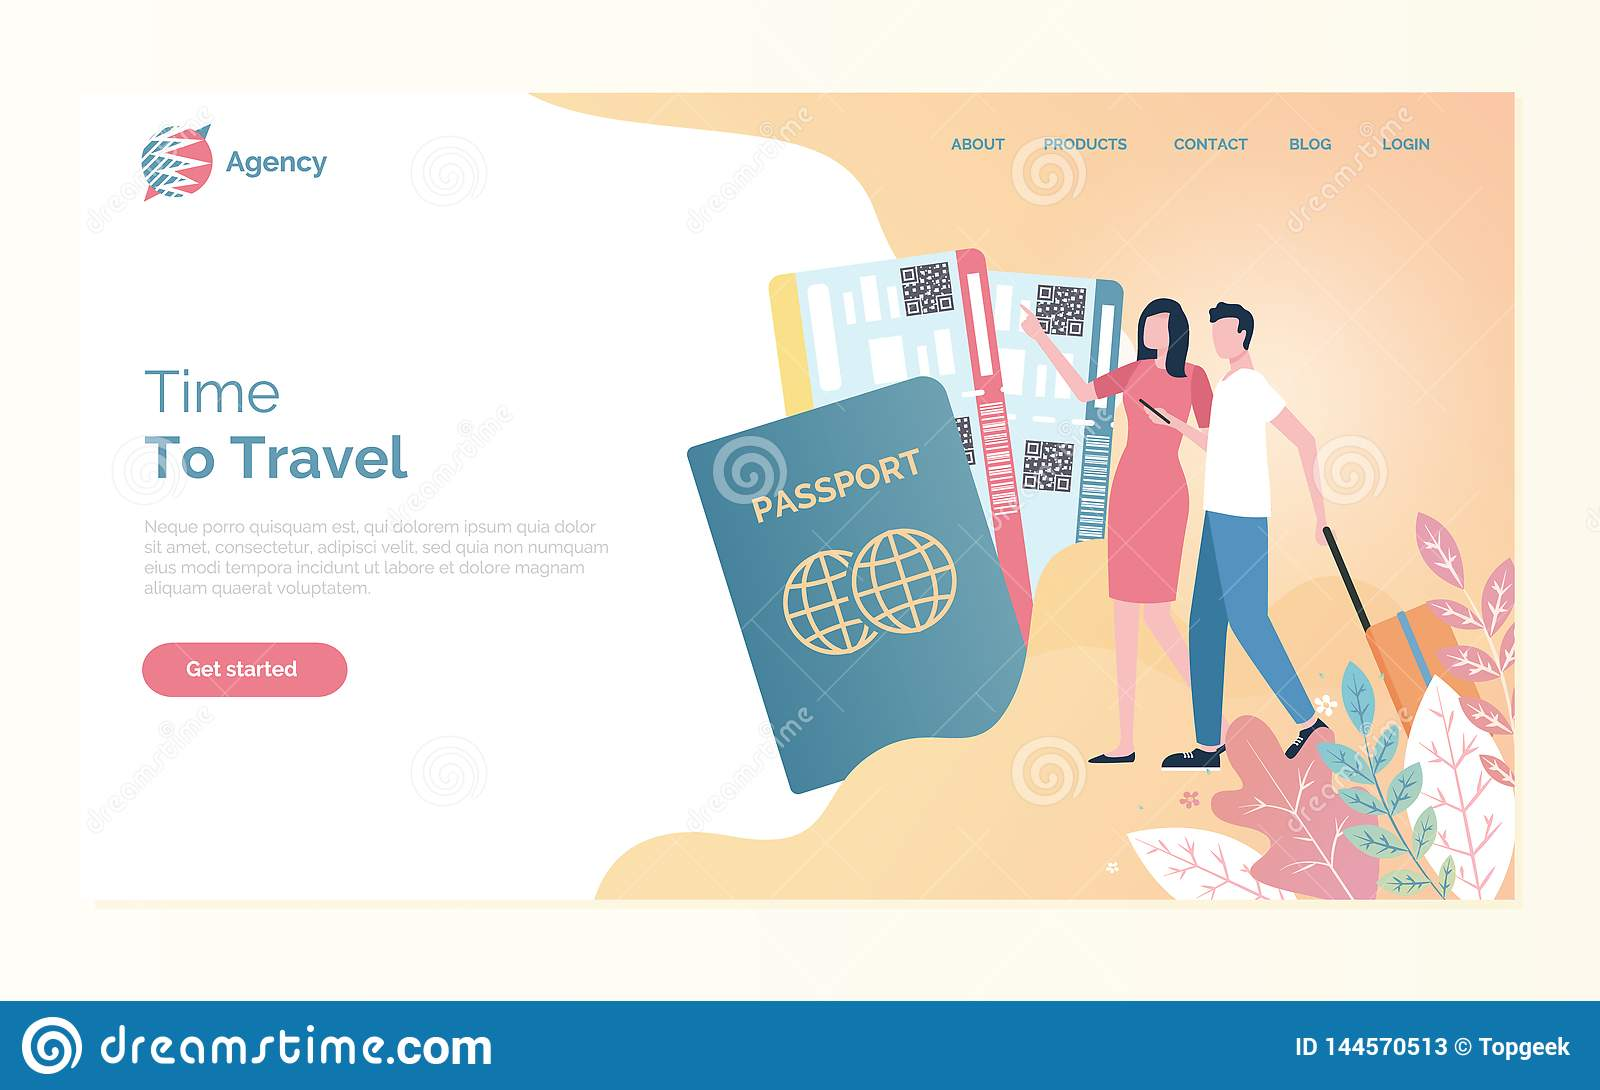 Online Agency, Time to Travel, Passport Vector